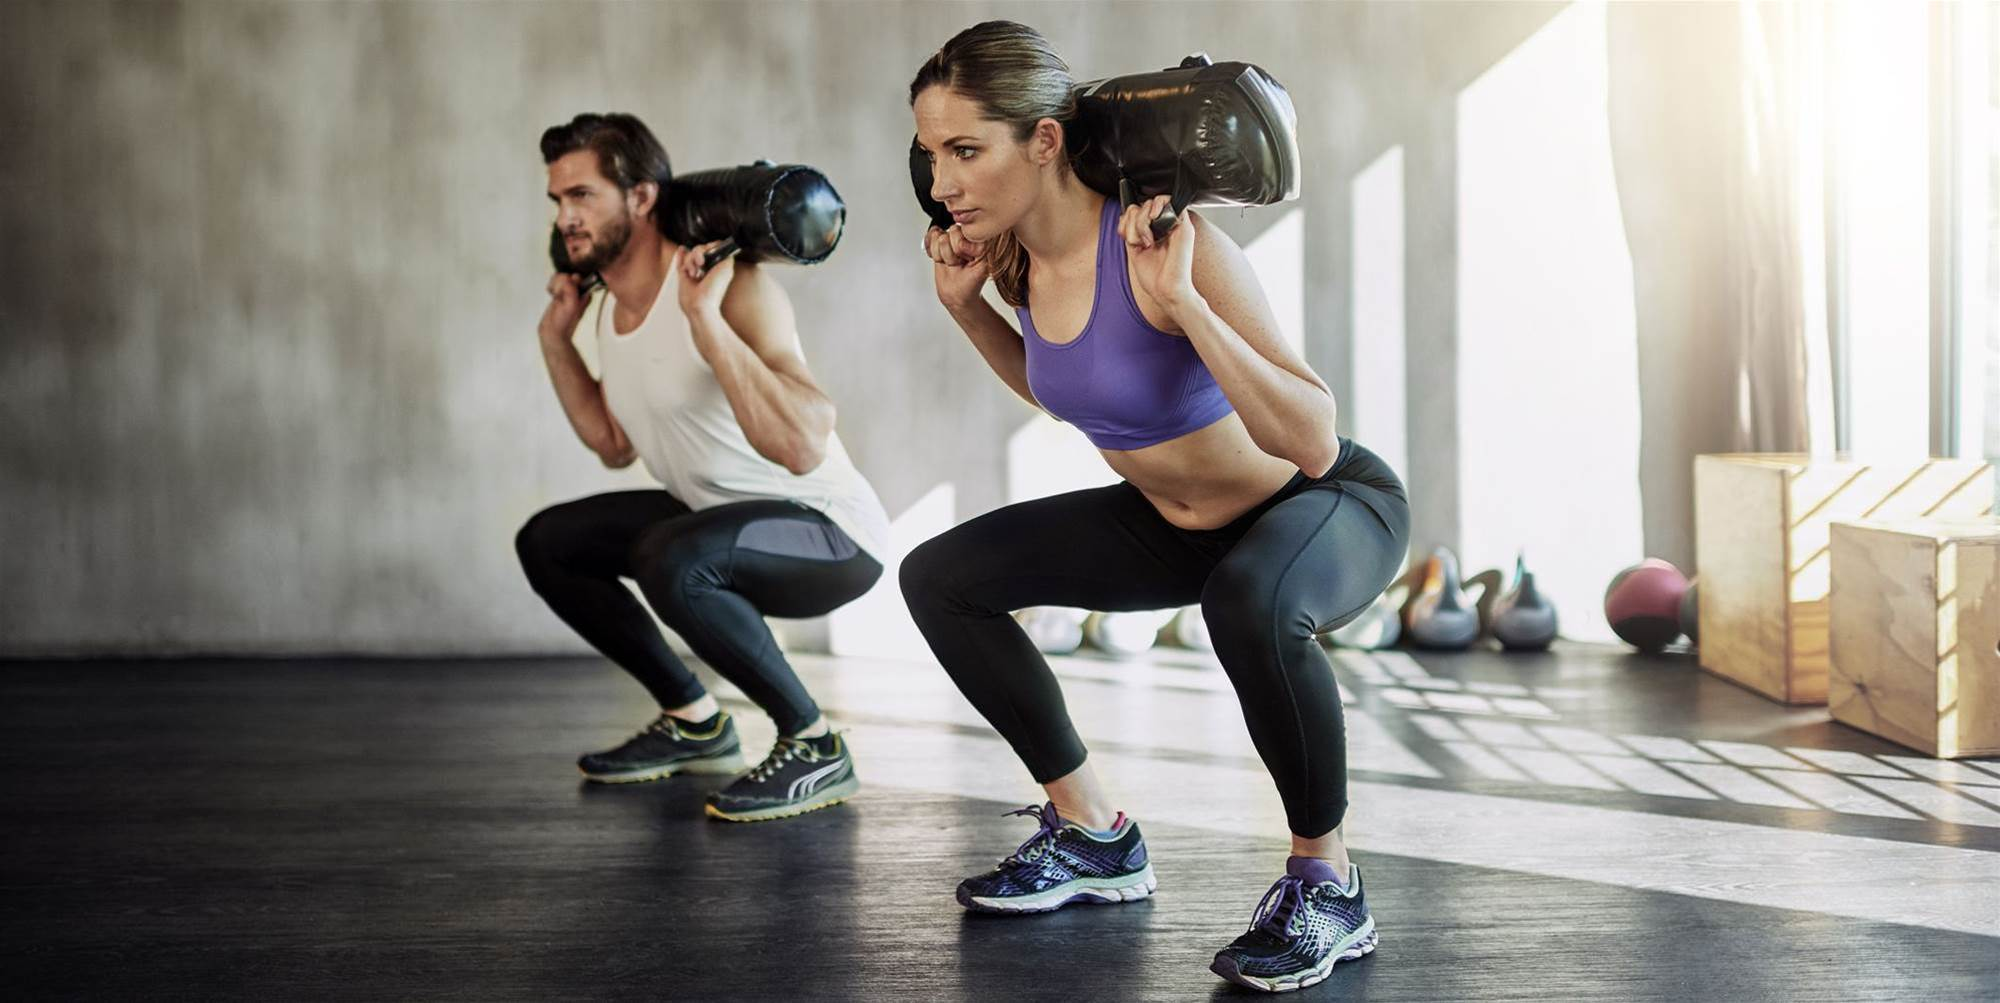 Metabolic Conditioning Is the Best Way to Design a Workout for Your Fitness Goals